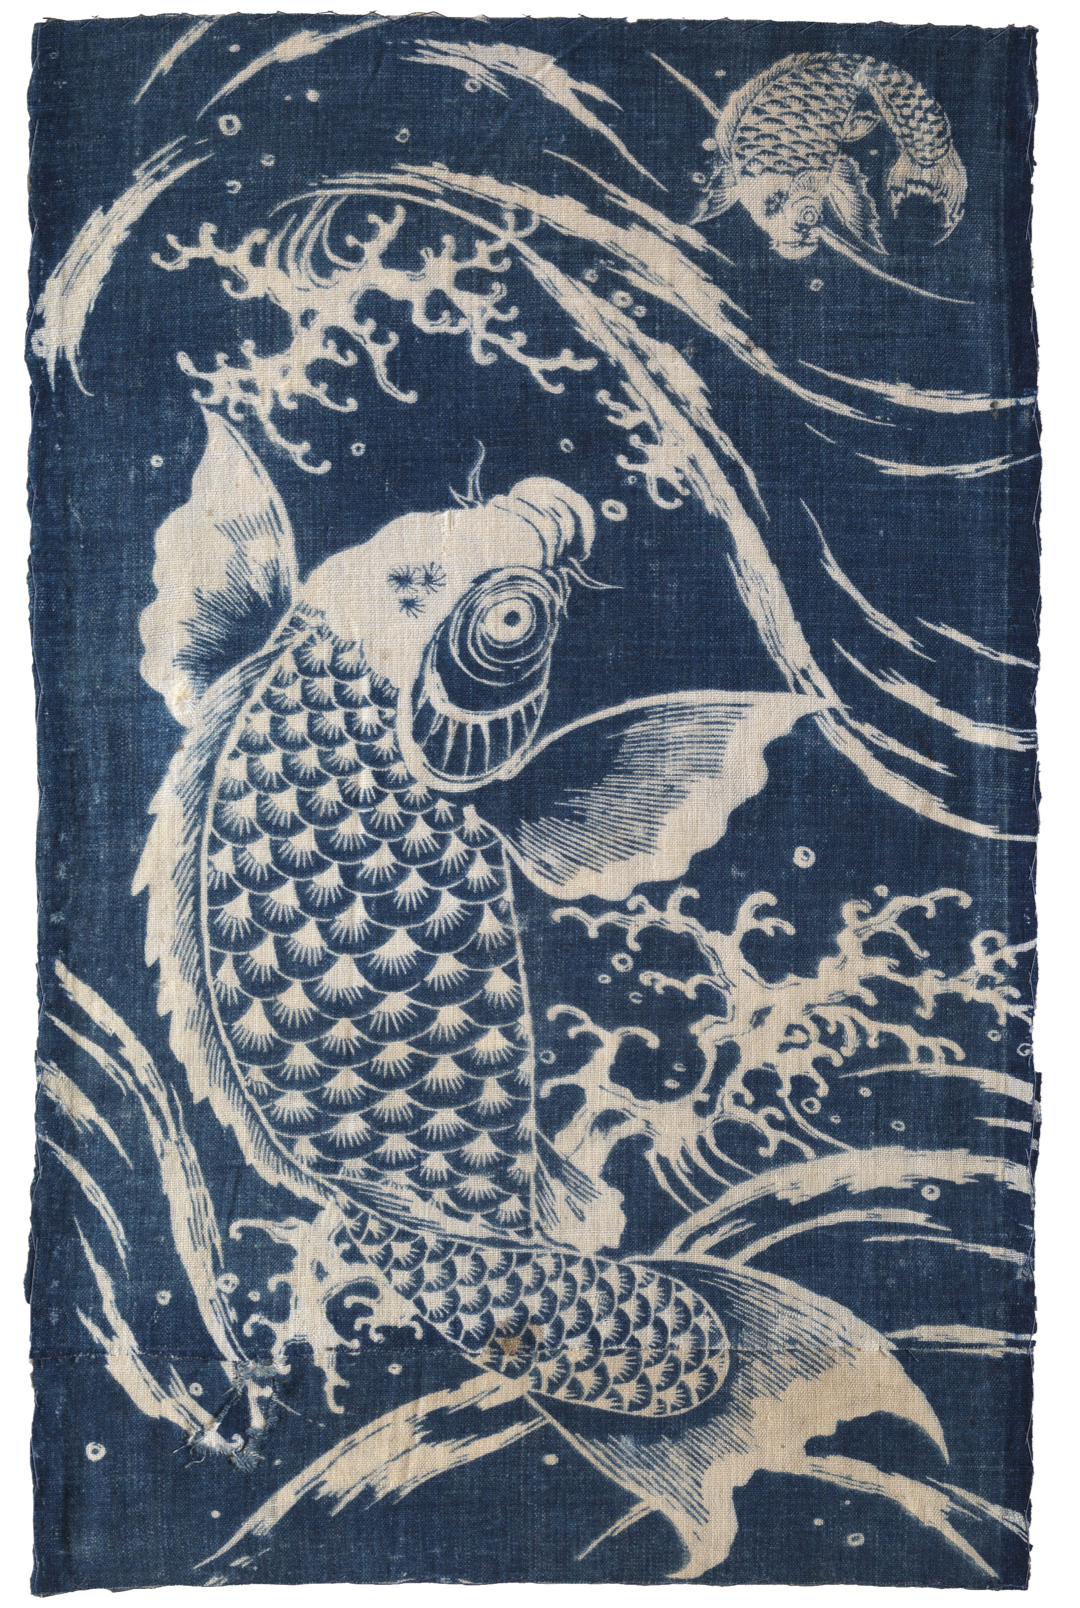 Indigo textile patterned with two carp and waves in white